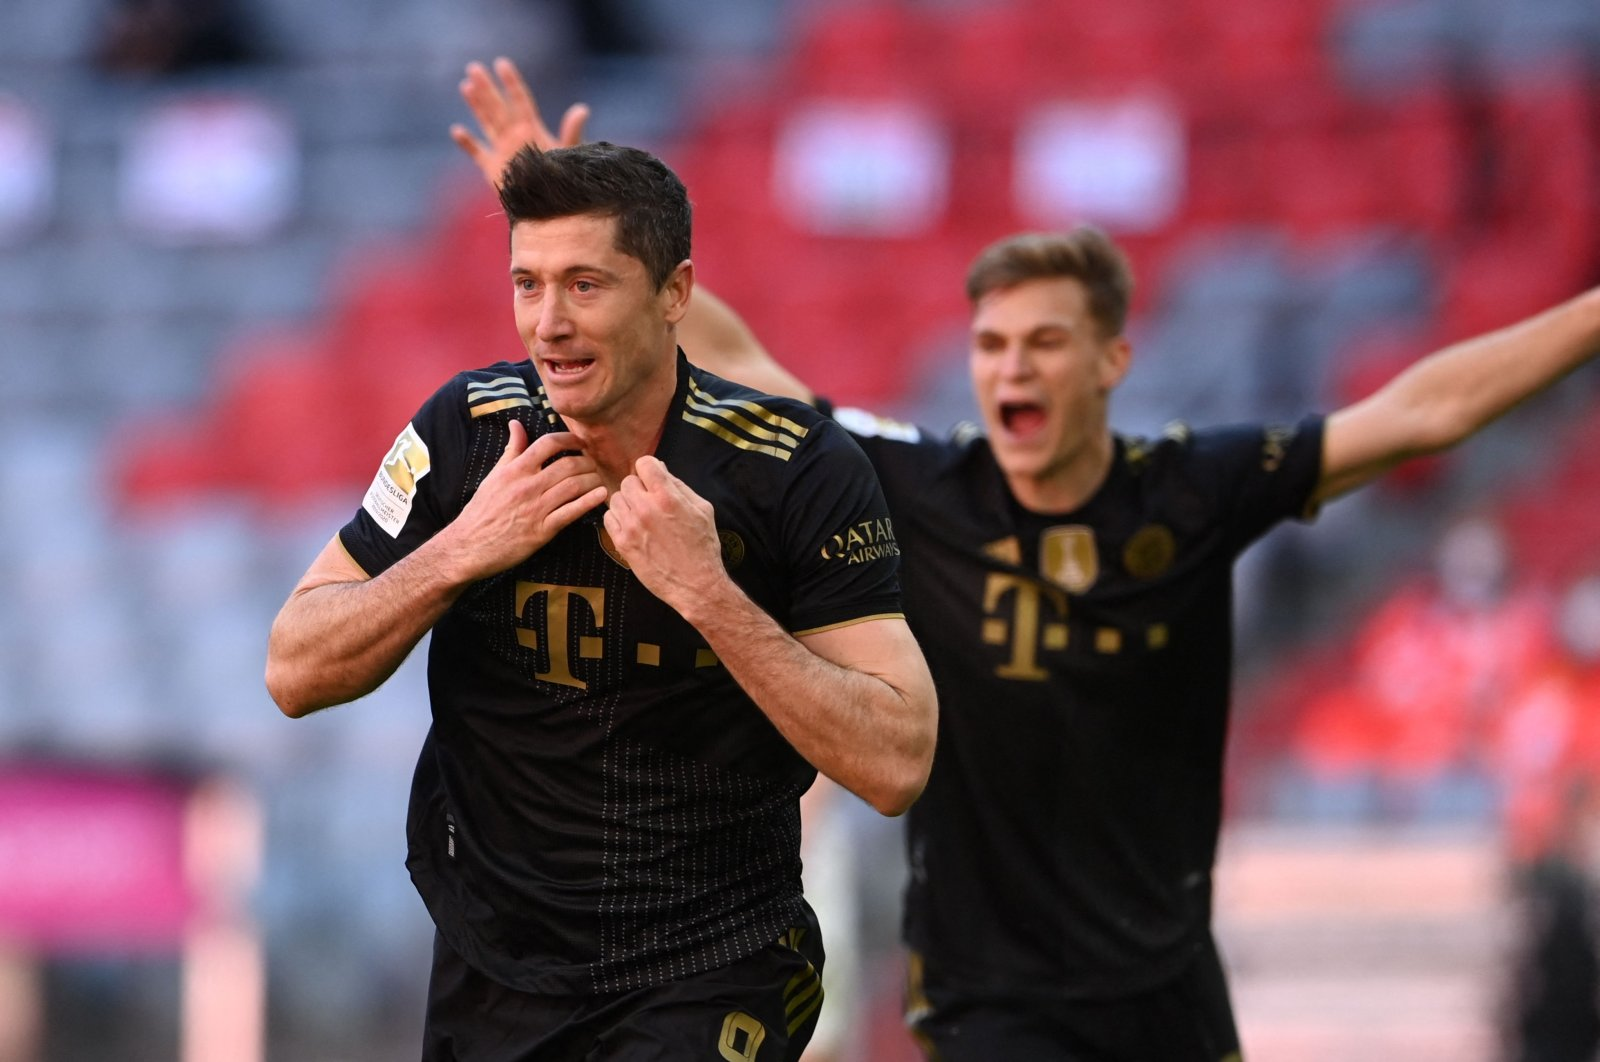 Bayern Munich's Polish forward Robert Lewandowski celebrates scoring his team's fifth goal and his 41st season goal during the German first division Bundesliga football match against FC Augsburg in at Allianz Arena in Munich, southern Germany, May 22, 2021. (Photo by Christof Strache/DFL/Pool via AFP)